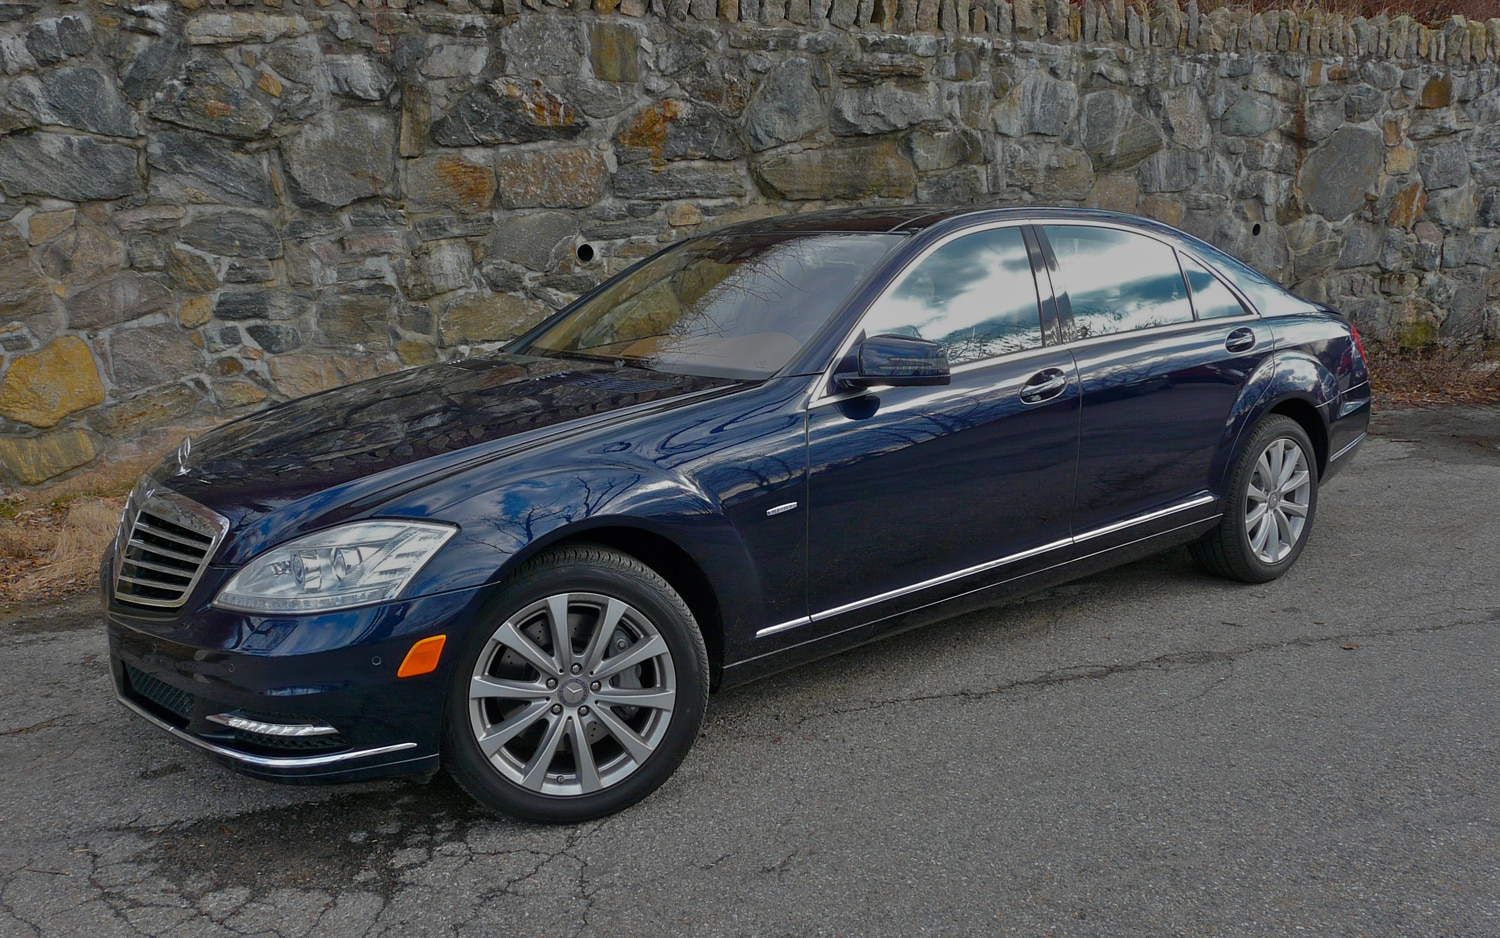 2012 Mercedes Benz S350 BlueTEC Front Left Side View1